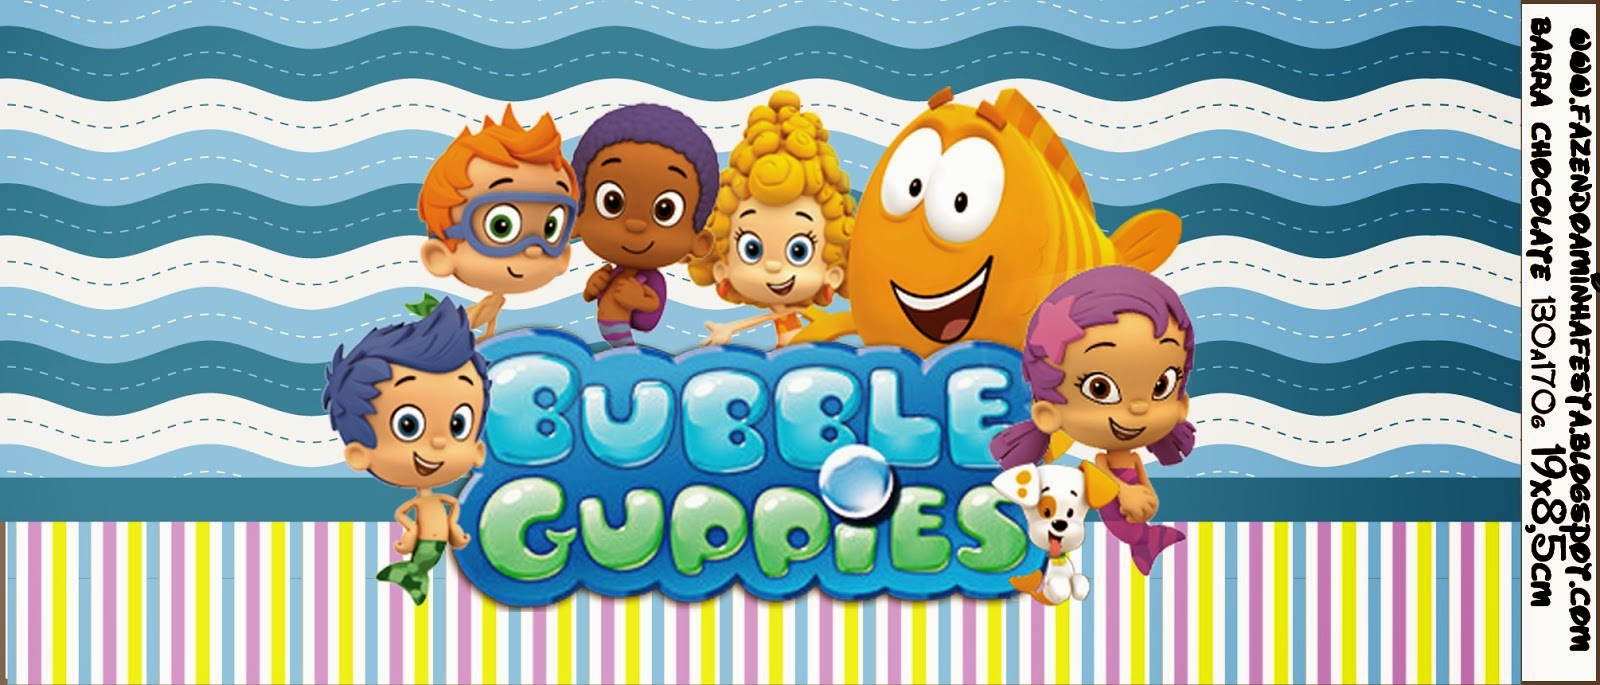 Bubble guppies free printable candy bar labels oh my fiesta in free printable chocolate wrapper maxwellsz